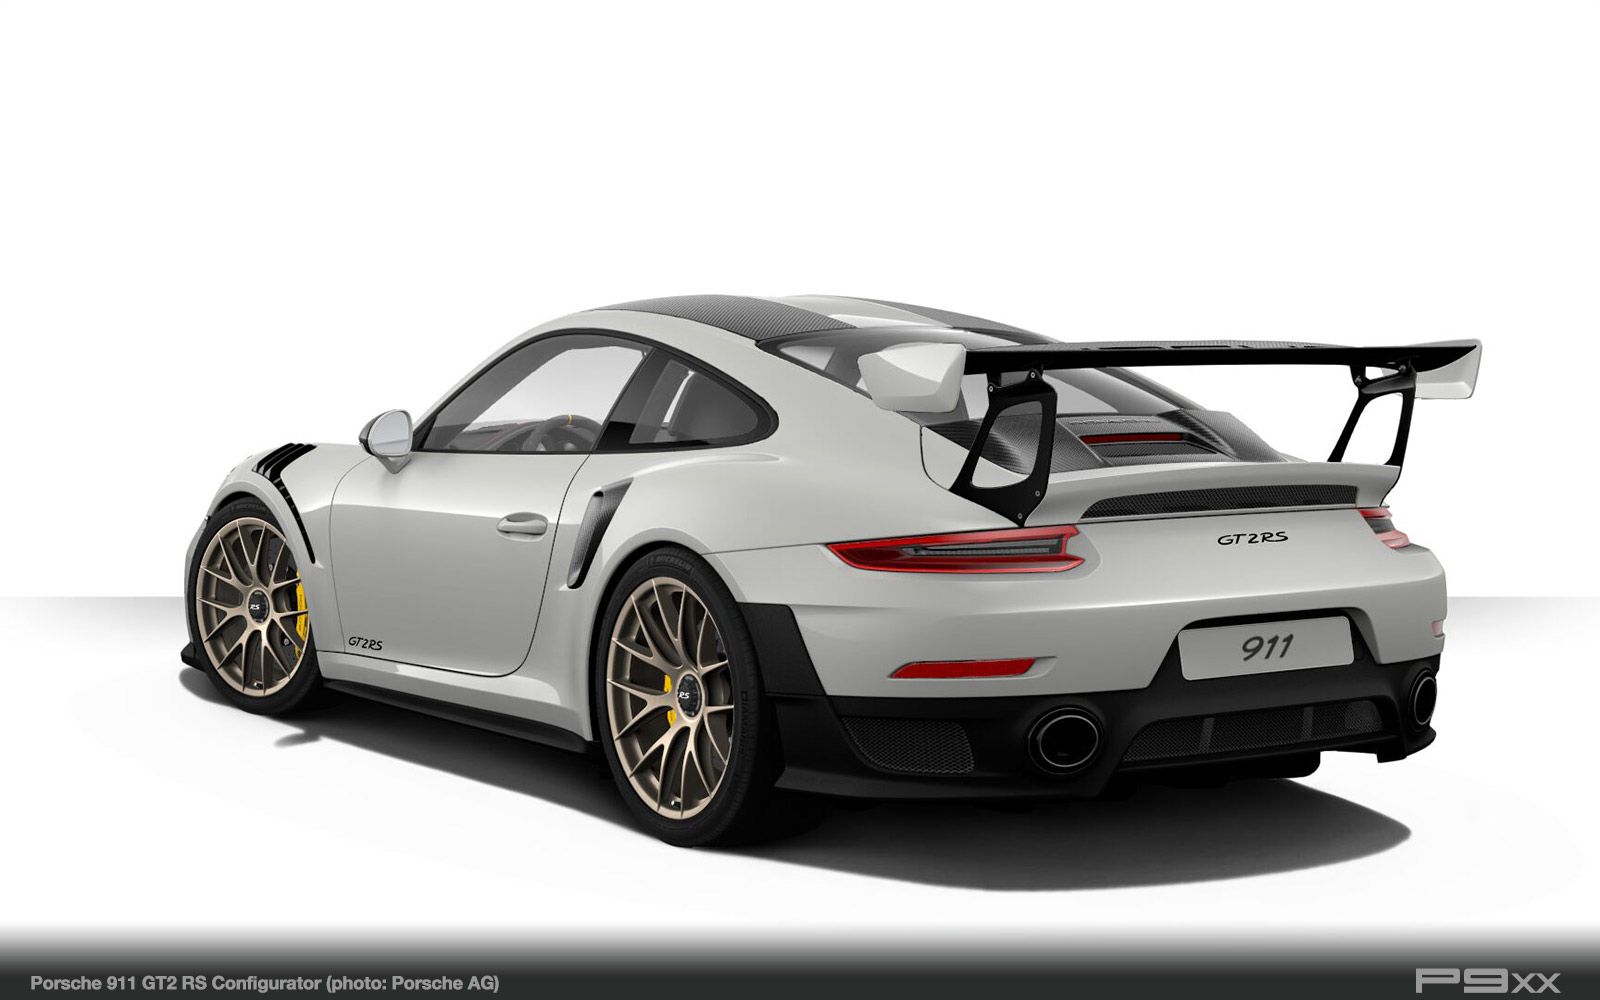 porsche s 911 gt2 rs configurator is live p9xx. Black Bedroom Furniture Sets. Home Design Ideas